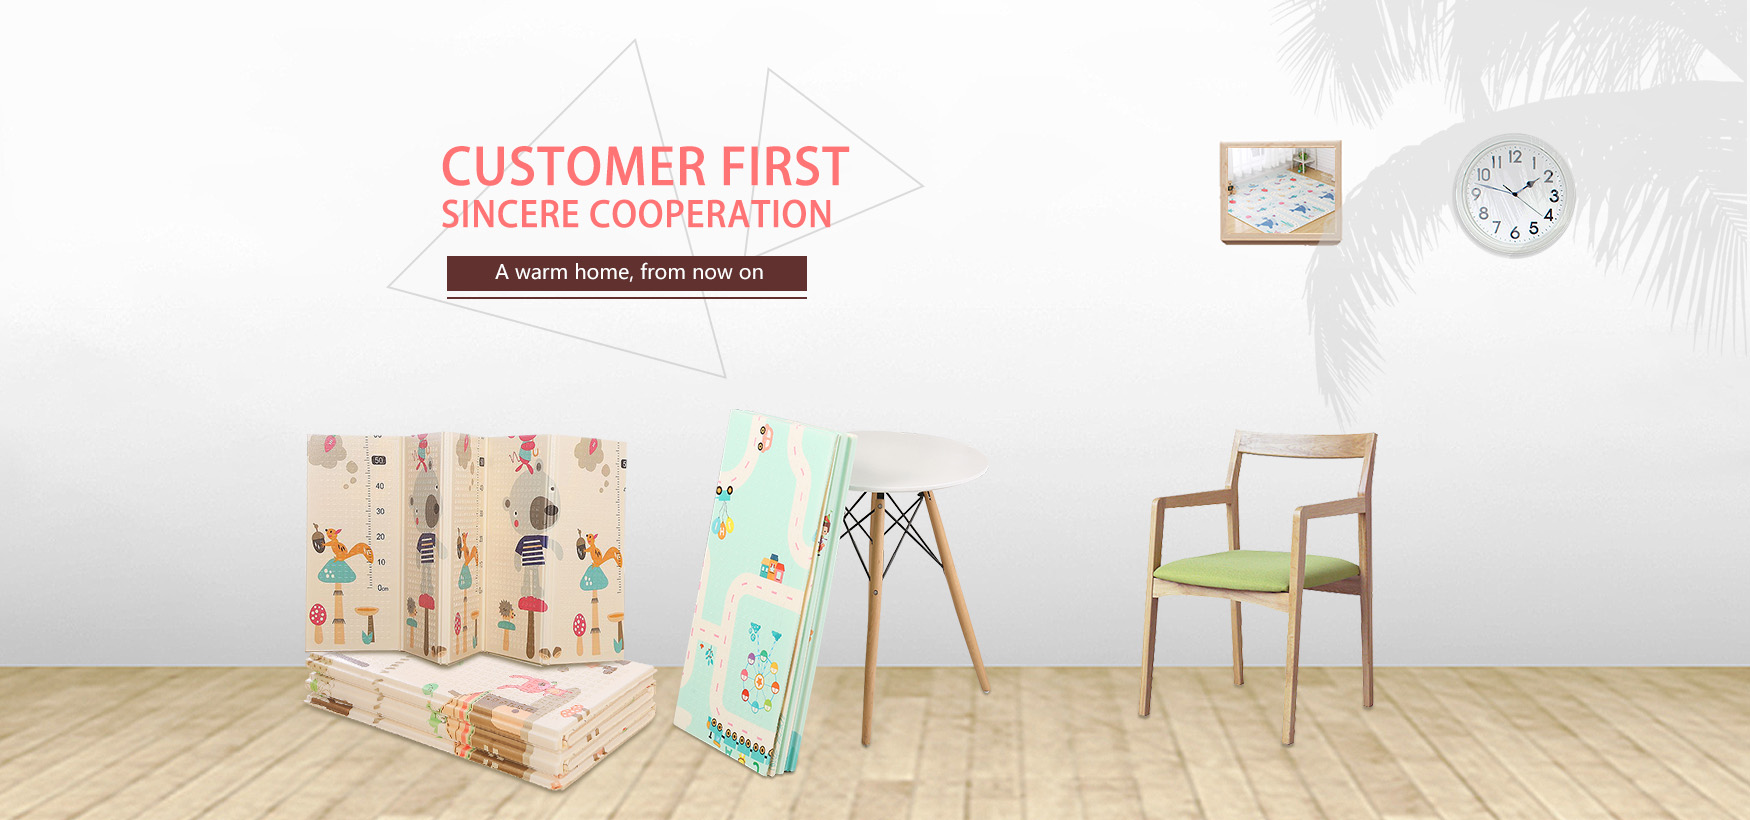 customer first sincere cooperation